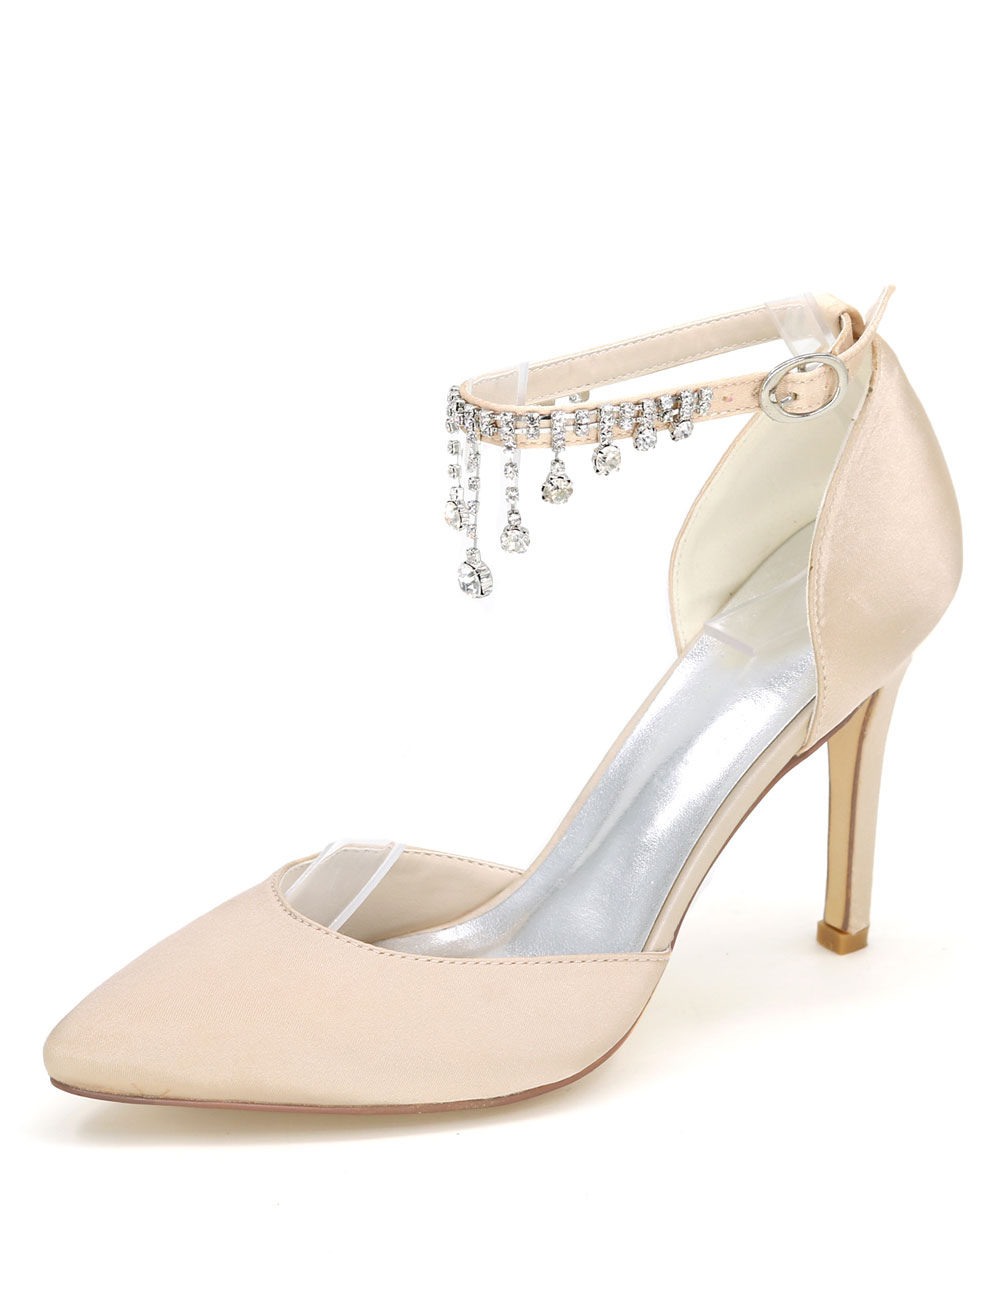 Buy White Wedding Shoes High Heel Ankle Strap Pointed Toe Rhinestones Bridal Shoes for $51.29 in Milanoo store